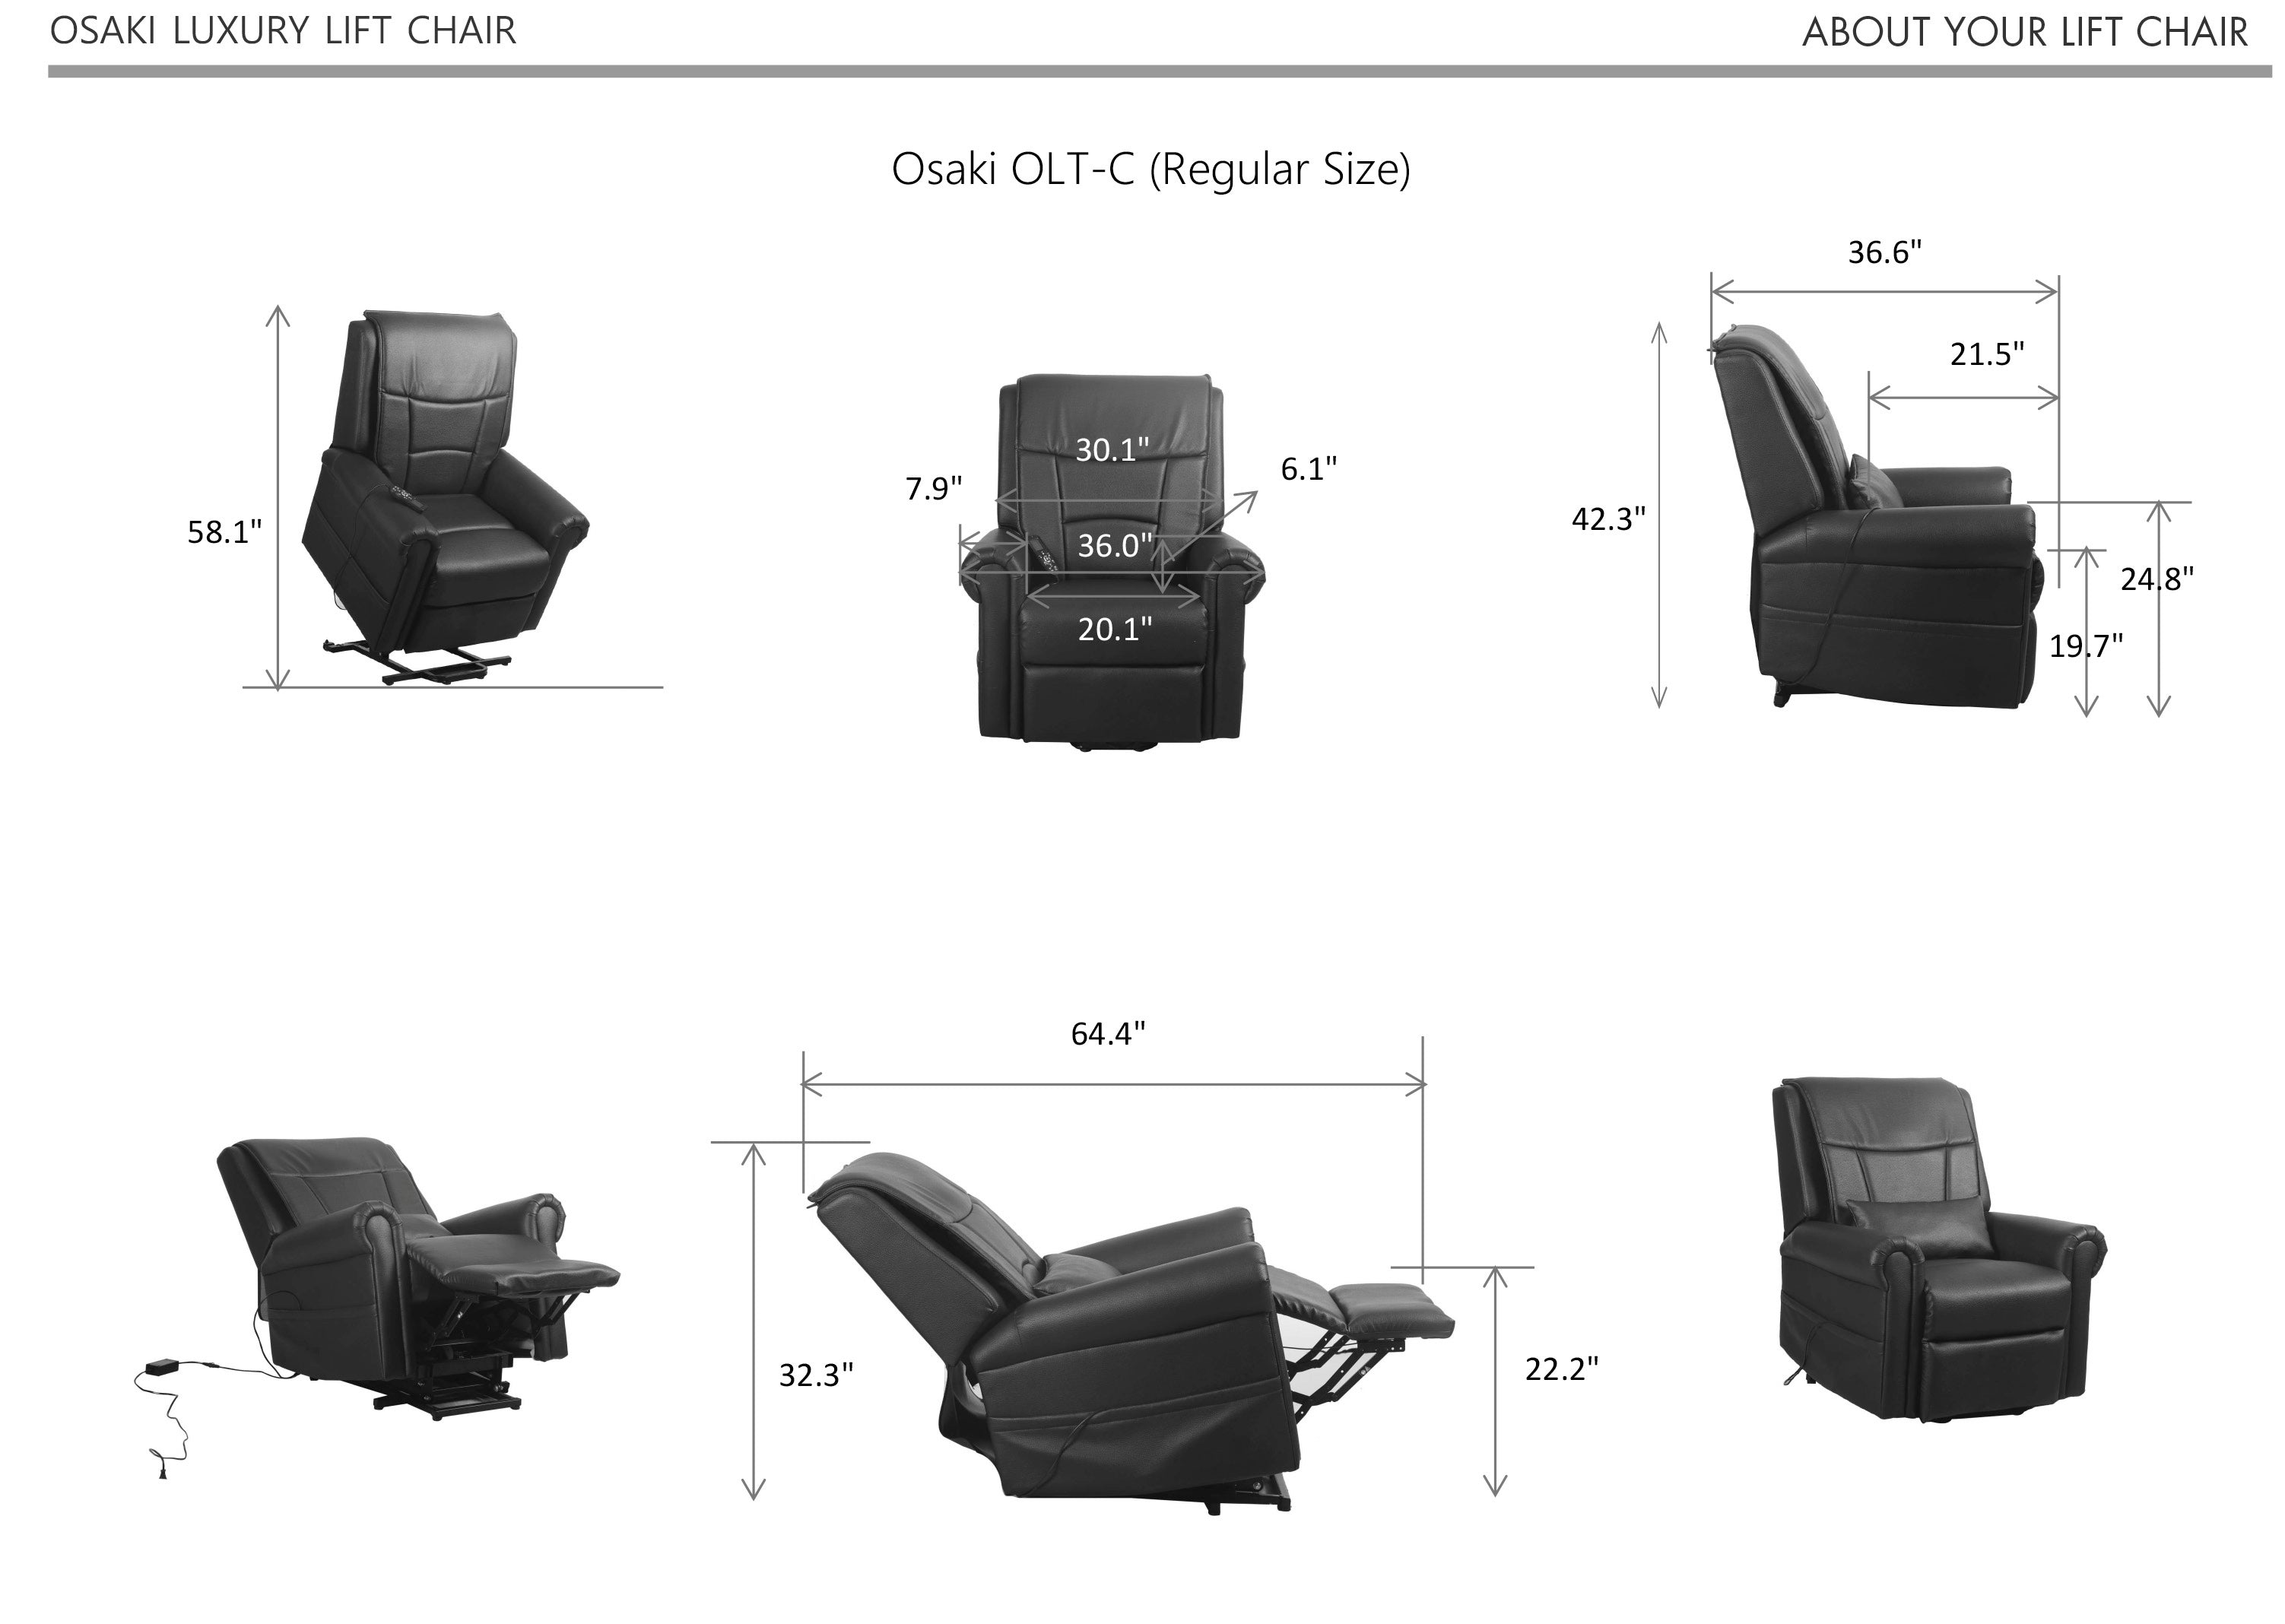 Osaki OLT-C Kneading Massage Lift Chair - DIMENSION